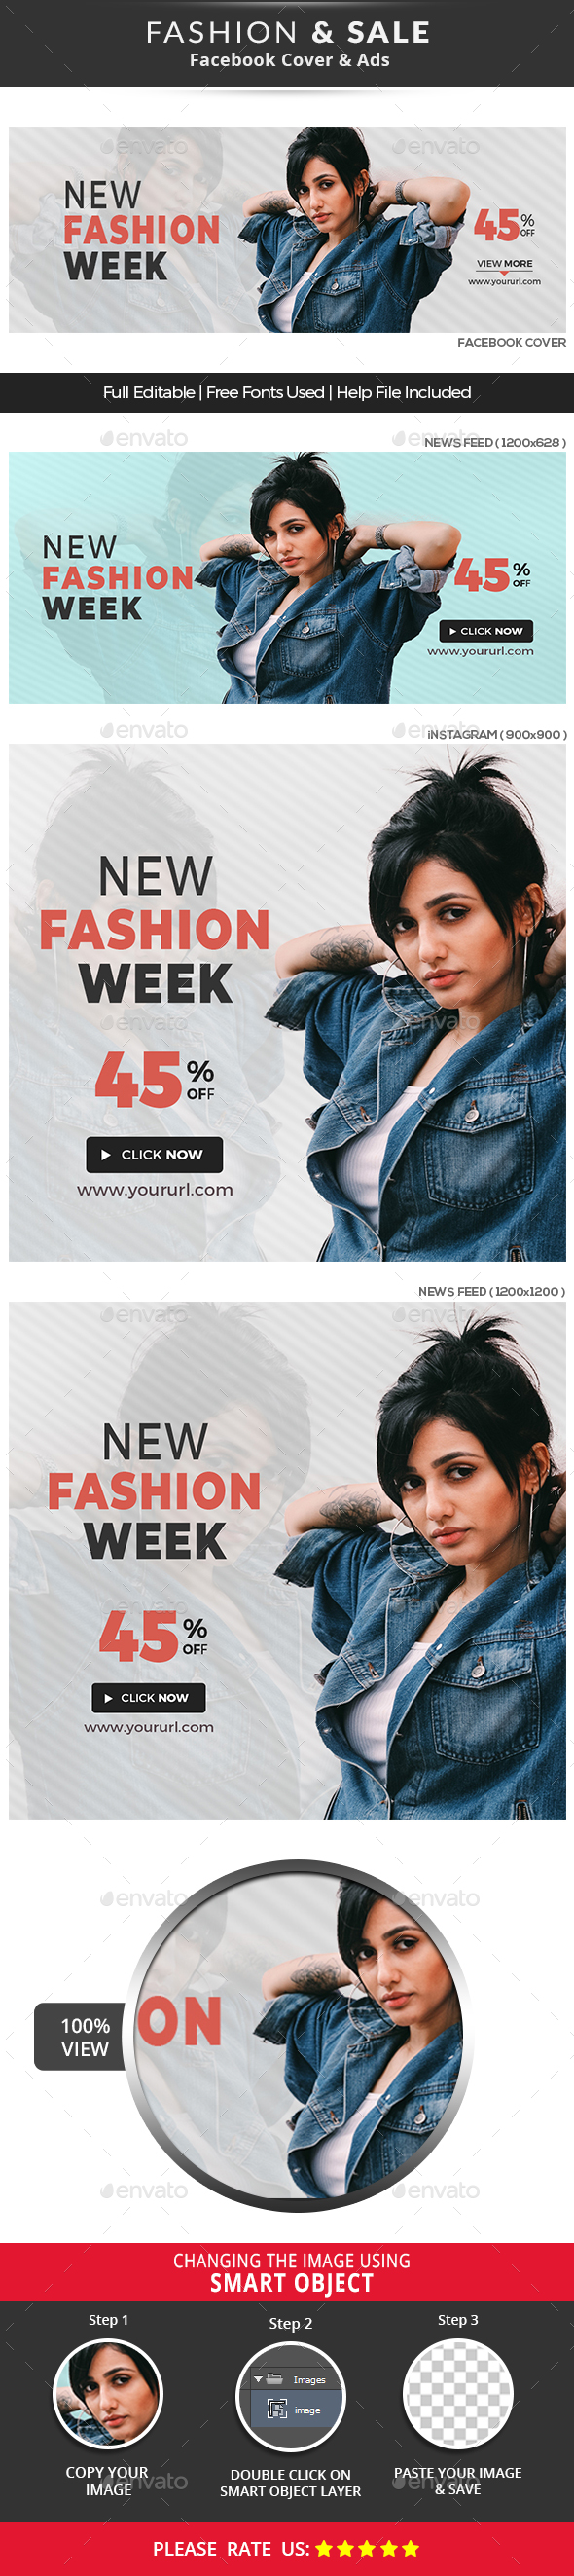 Fashion Sale Fb Cover & Ads - Social Media Web Elements